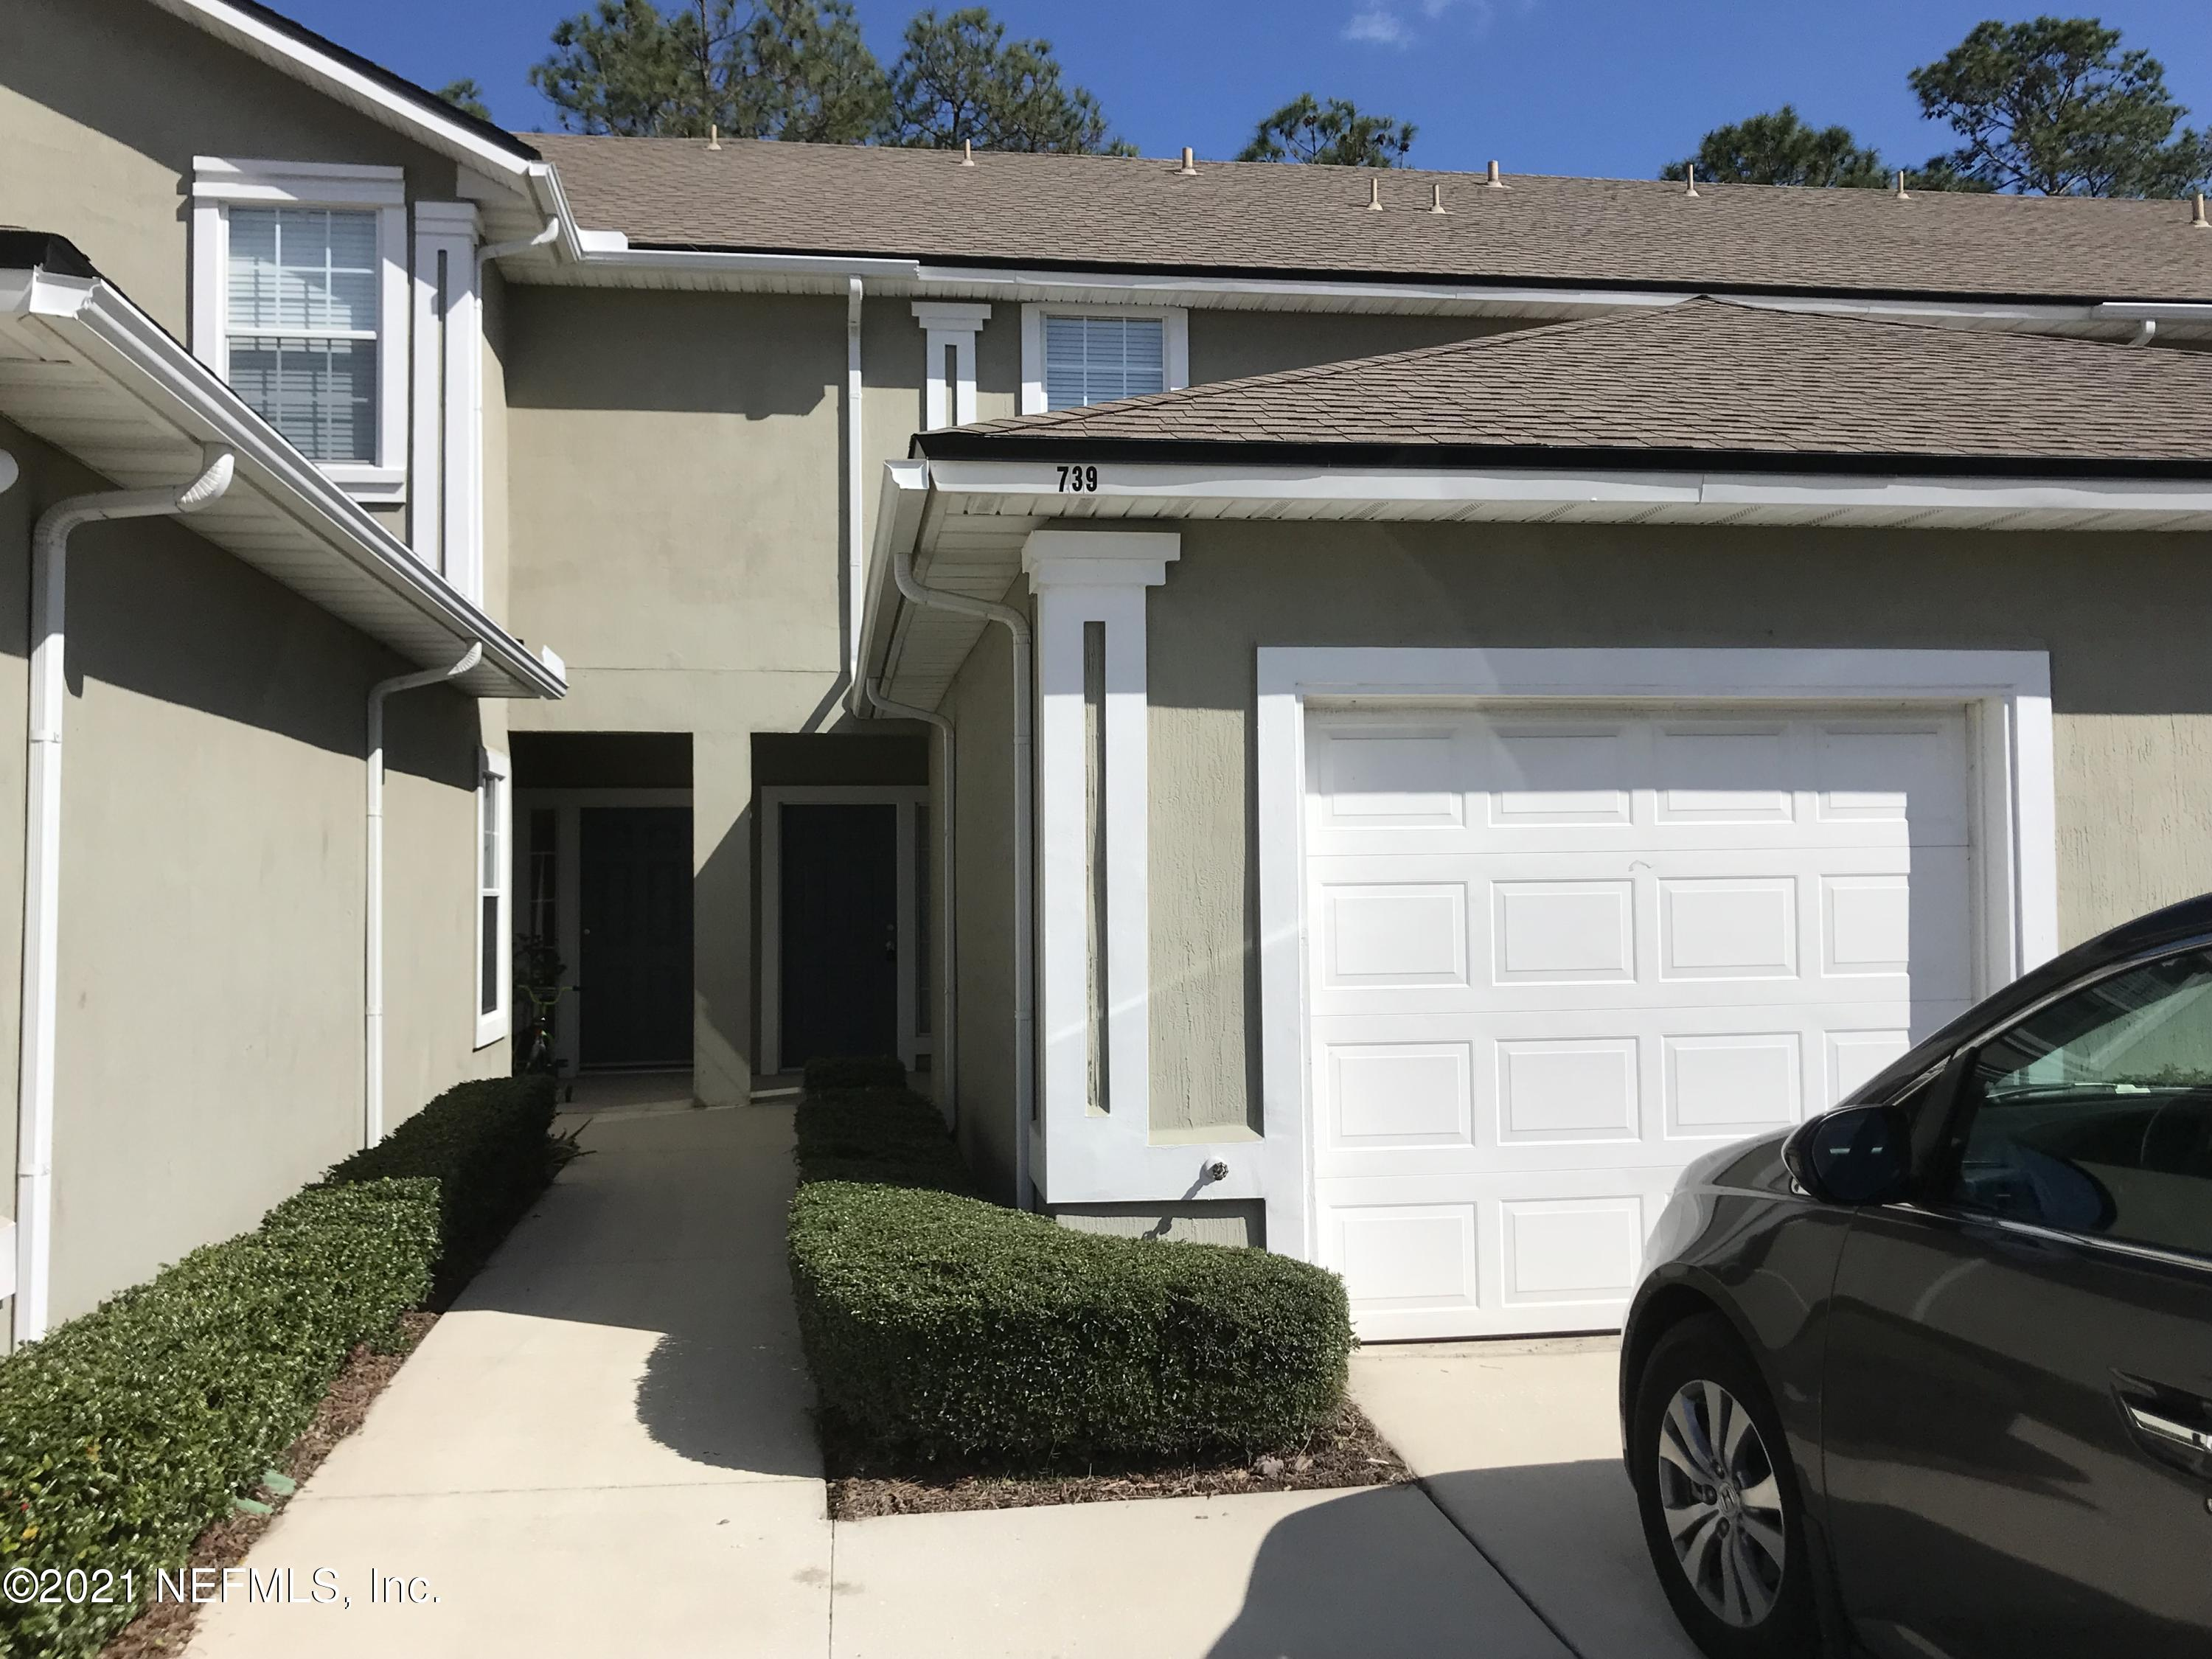 739 SCRUB JAY, ST AUGUSTINE, FLORIDA 32092, 2 Bedrooms Bedrooms, ,2 BathroomsBathrooms,Rental,For Rent,SCRUB JAY,1091289